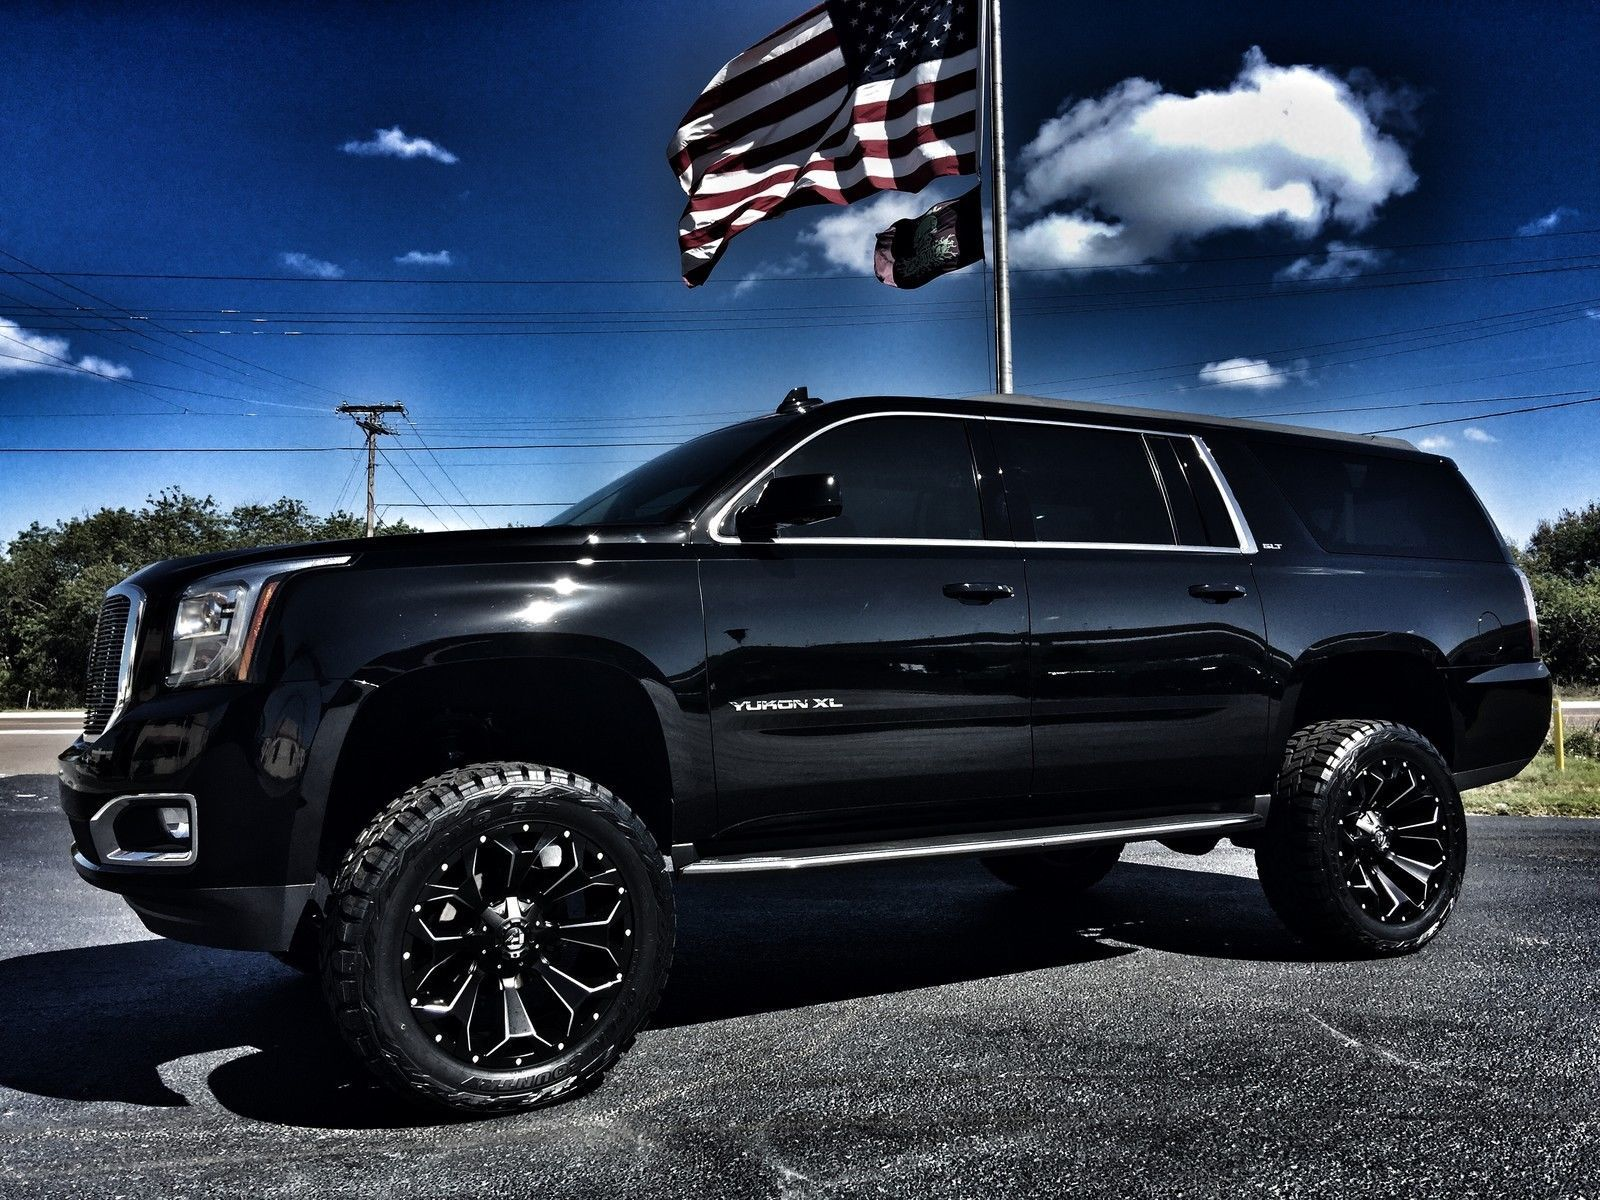 2016 Gmc Yukon Black Black Custom Lifted Slt 22 Fuel Ebay